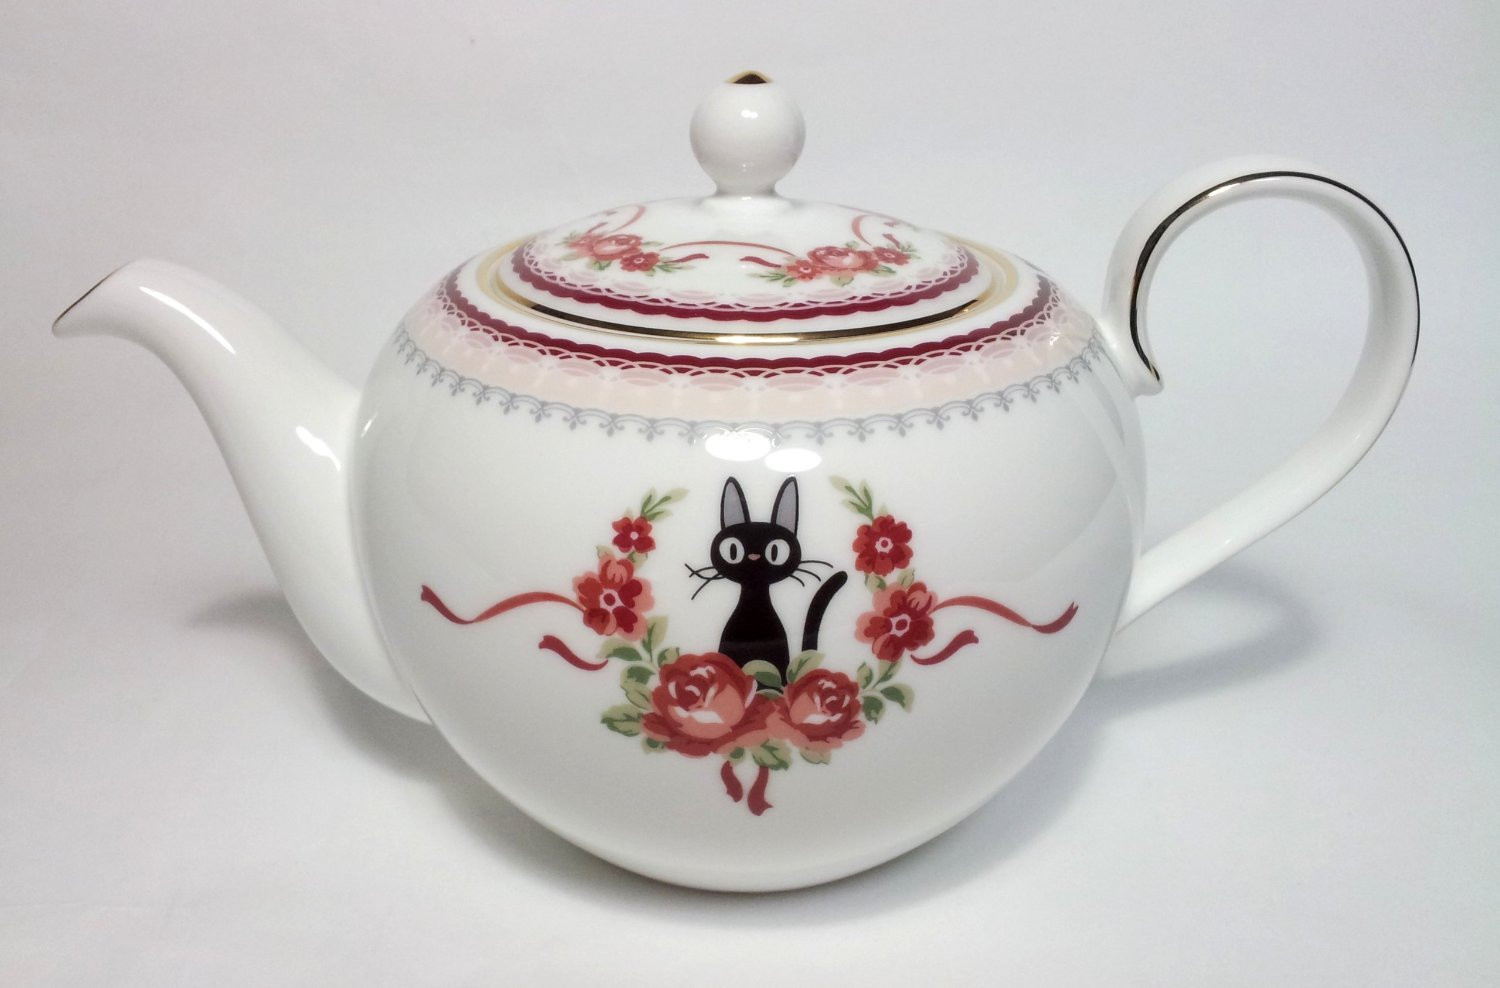 Kiki's Delivery Service x Noritake BONECHINA Tea pot JAPAN jiji Studio GhibliNEW